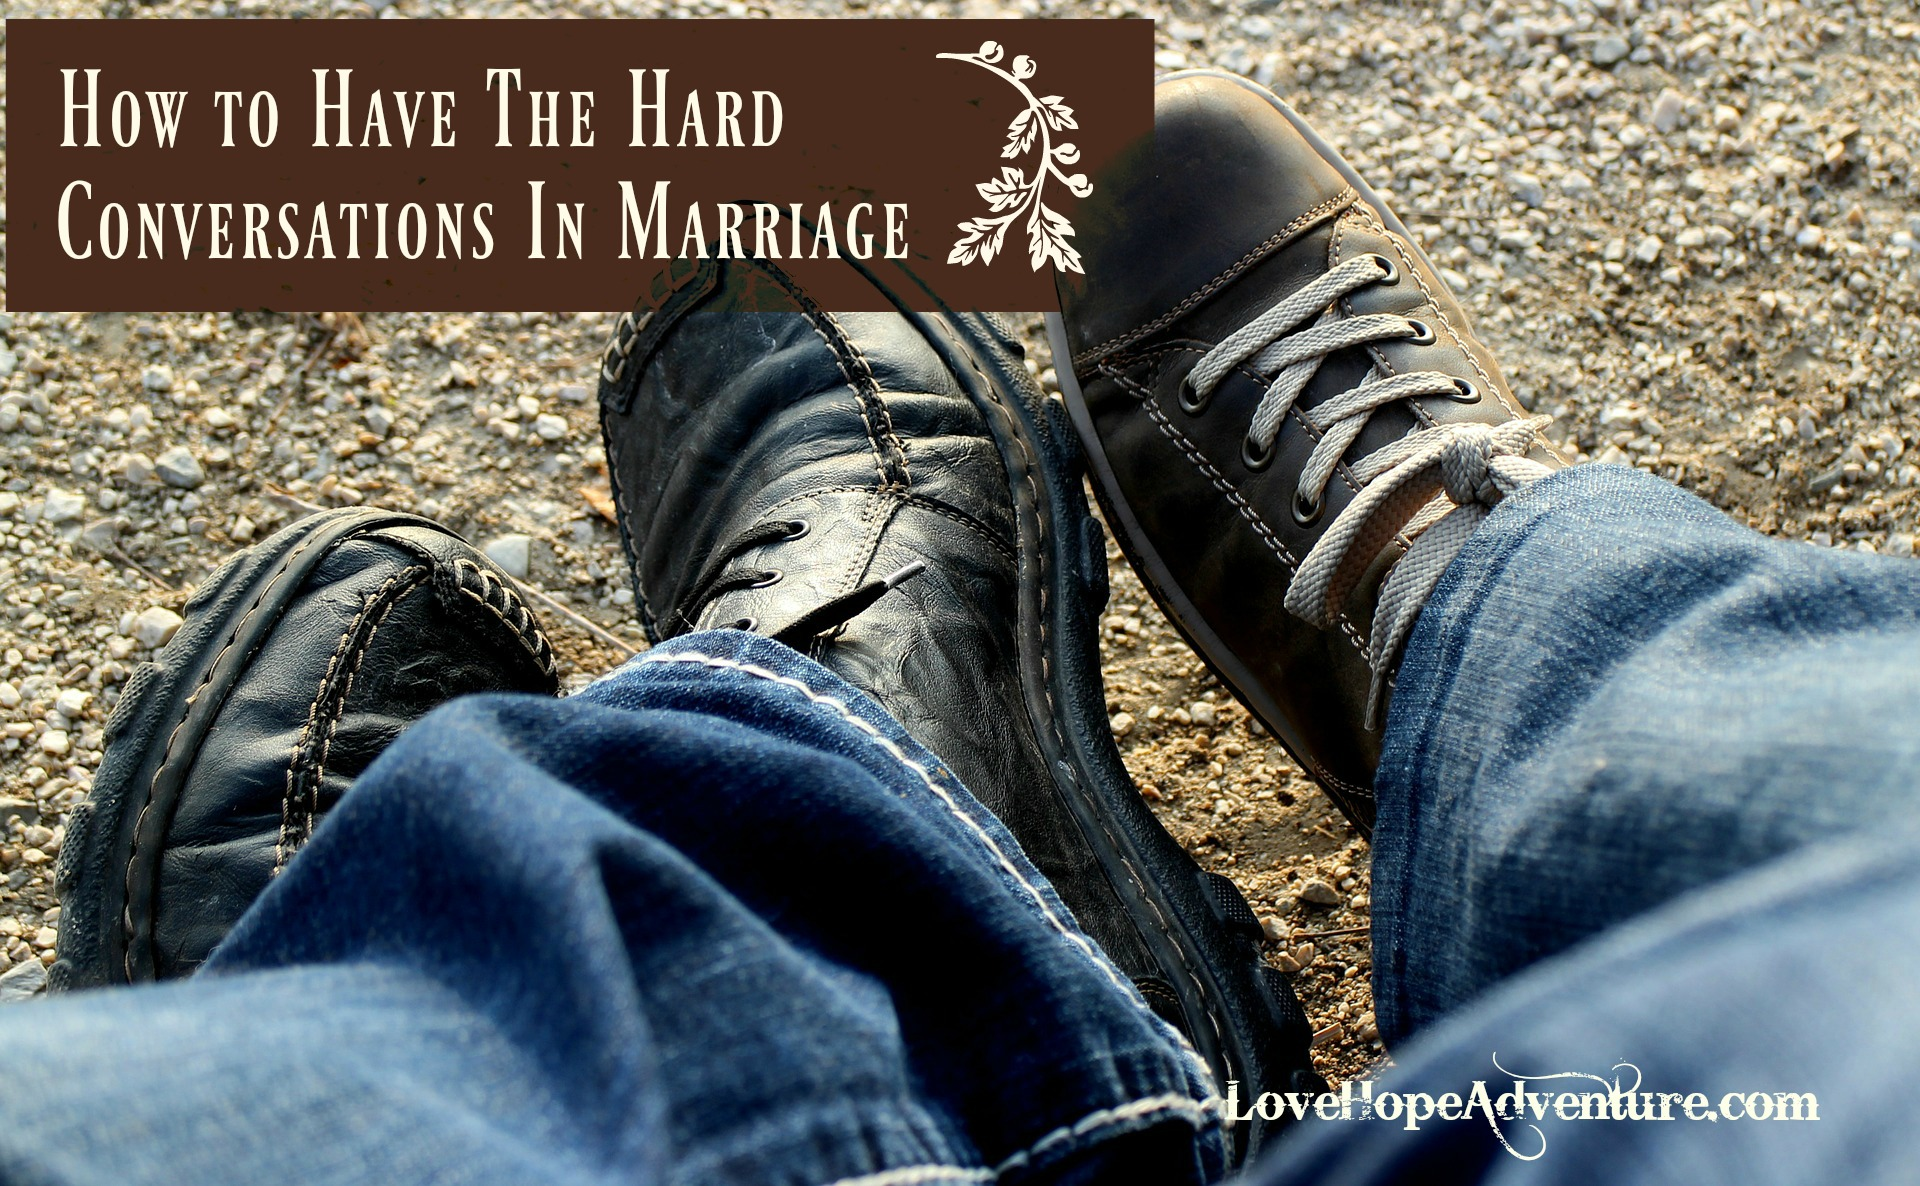 How to Have The Hard Conversations in Marriage